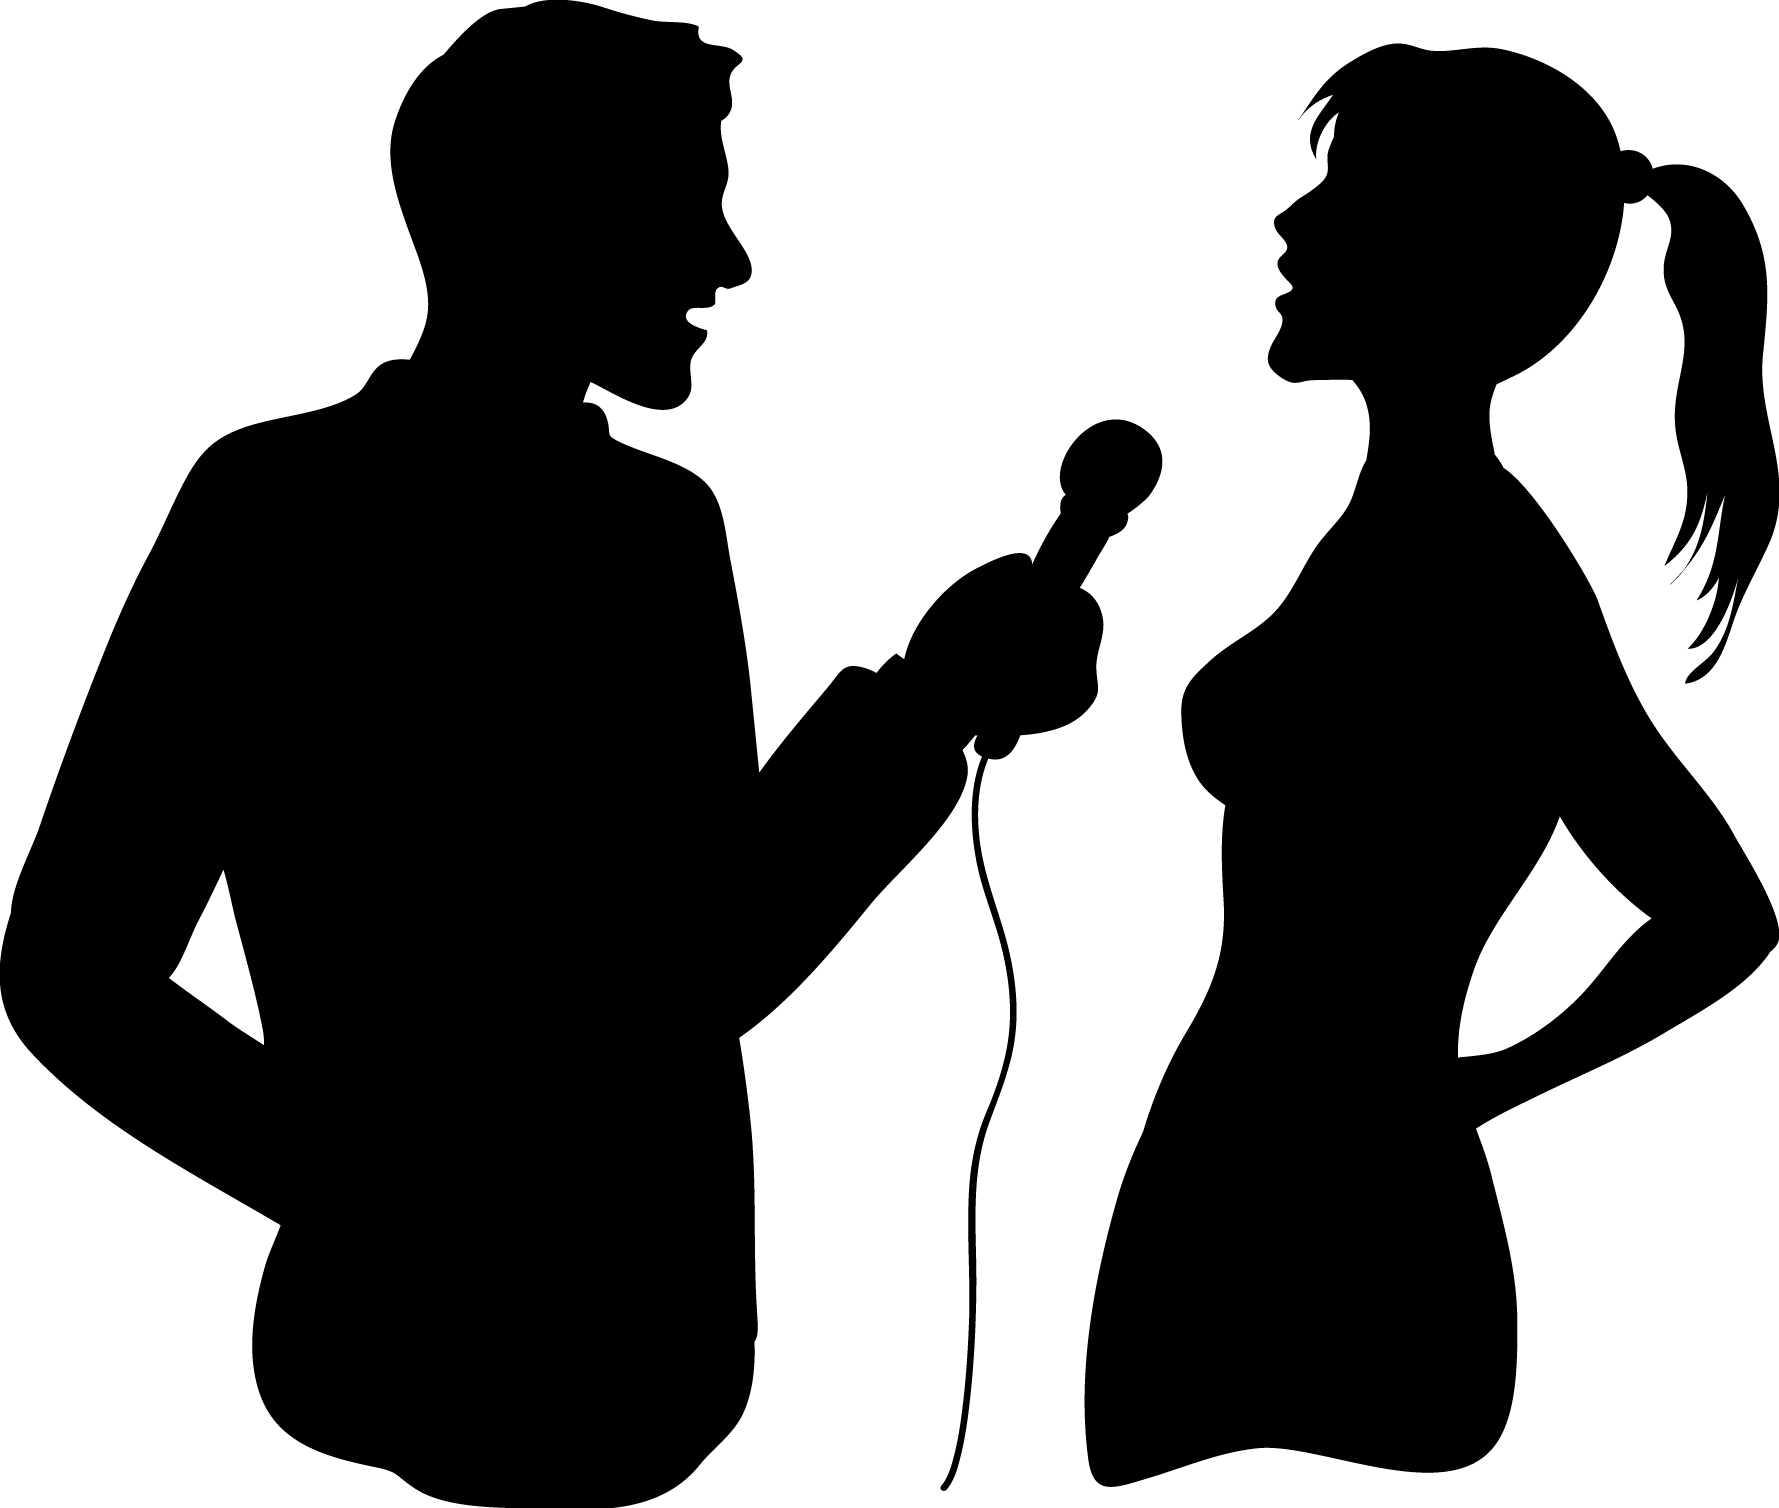 Top 10 Media Training Techniques - Interview Images, Transparent background PNG HD thumbnail